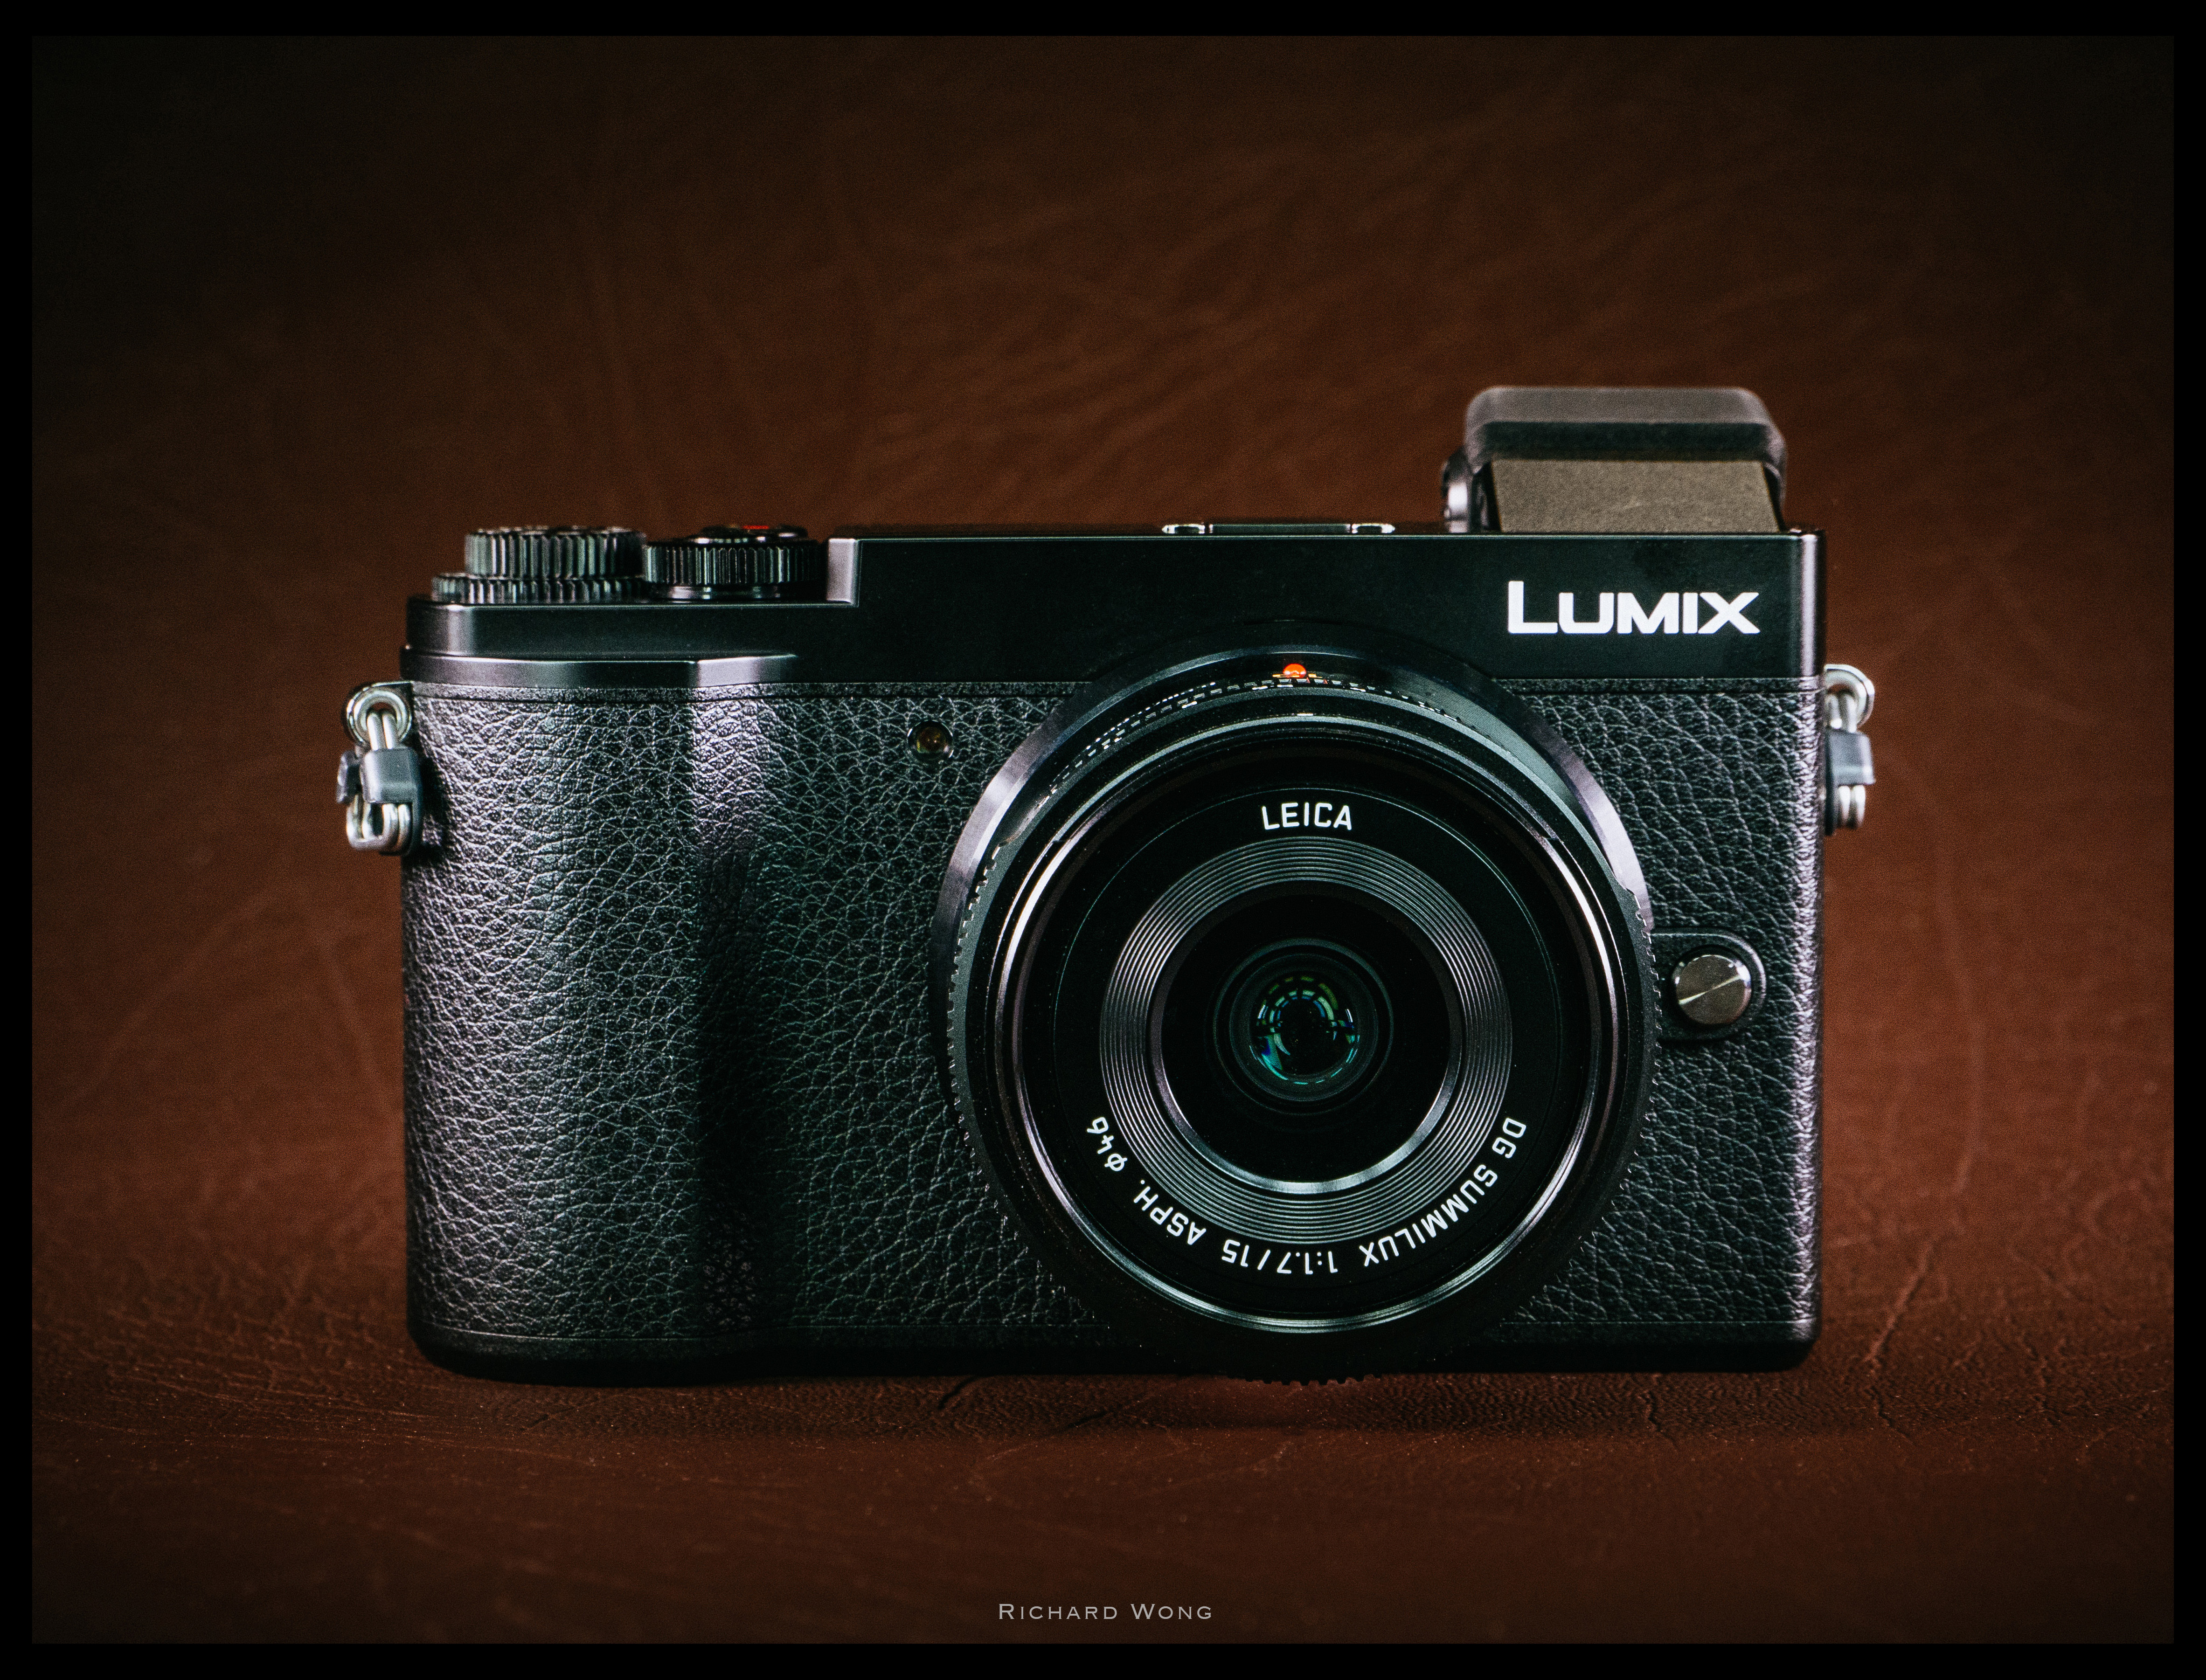 Panasonic Lumix Gx9 Review The Best Street Photography Camera Leica Dg Summilux 25mm F 14 Asph Micro 4 3 Lens If You Tape Logo Will Have A Really Compact And Stealthy Looking